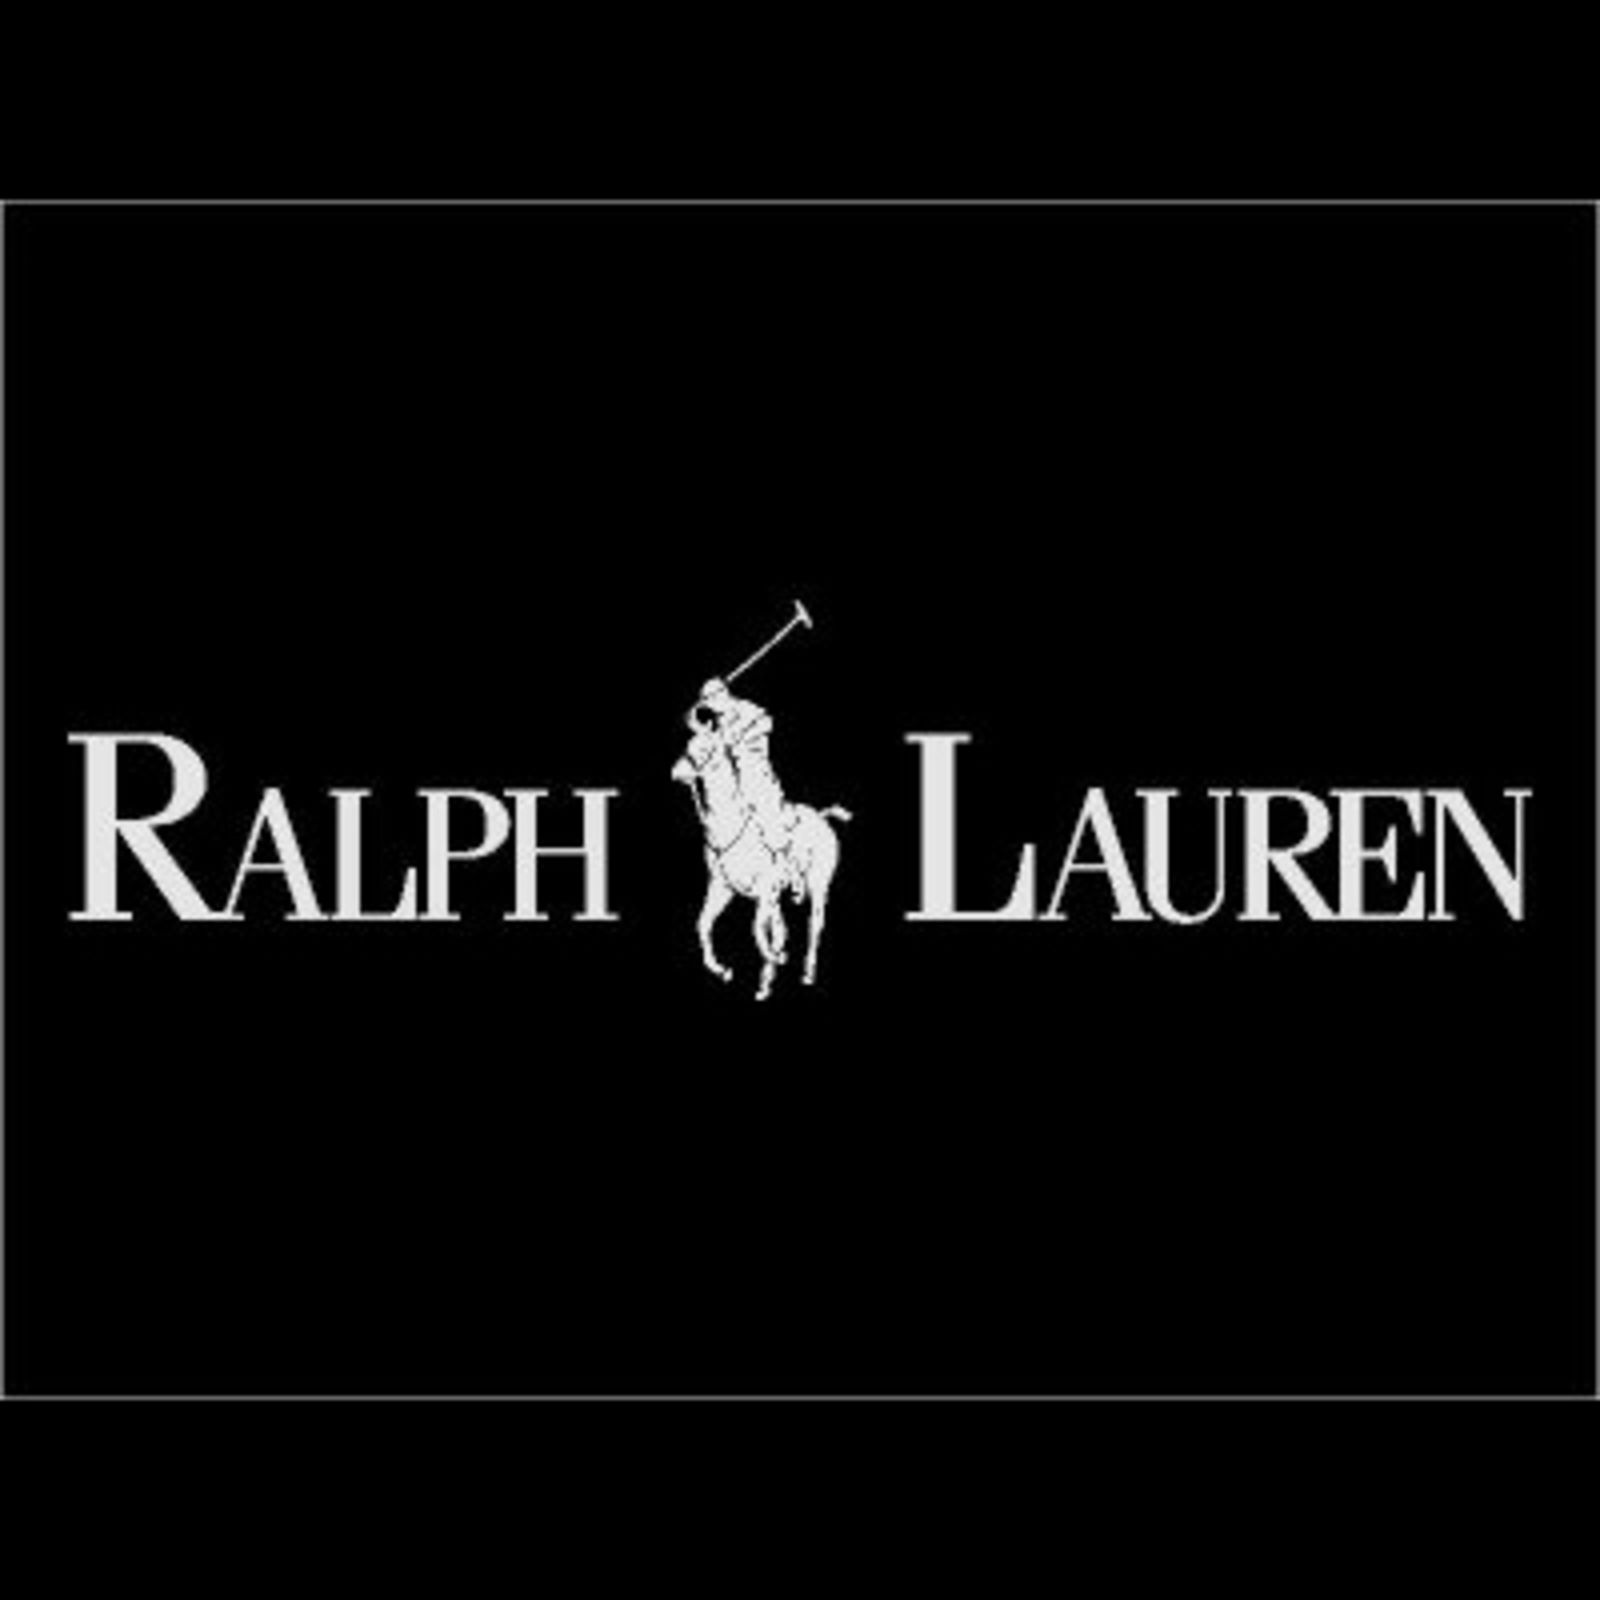 RALPH LAUREN BLACK LABEL (Bild 1)